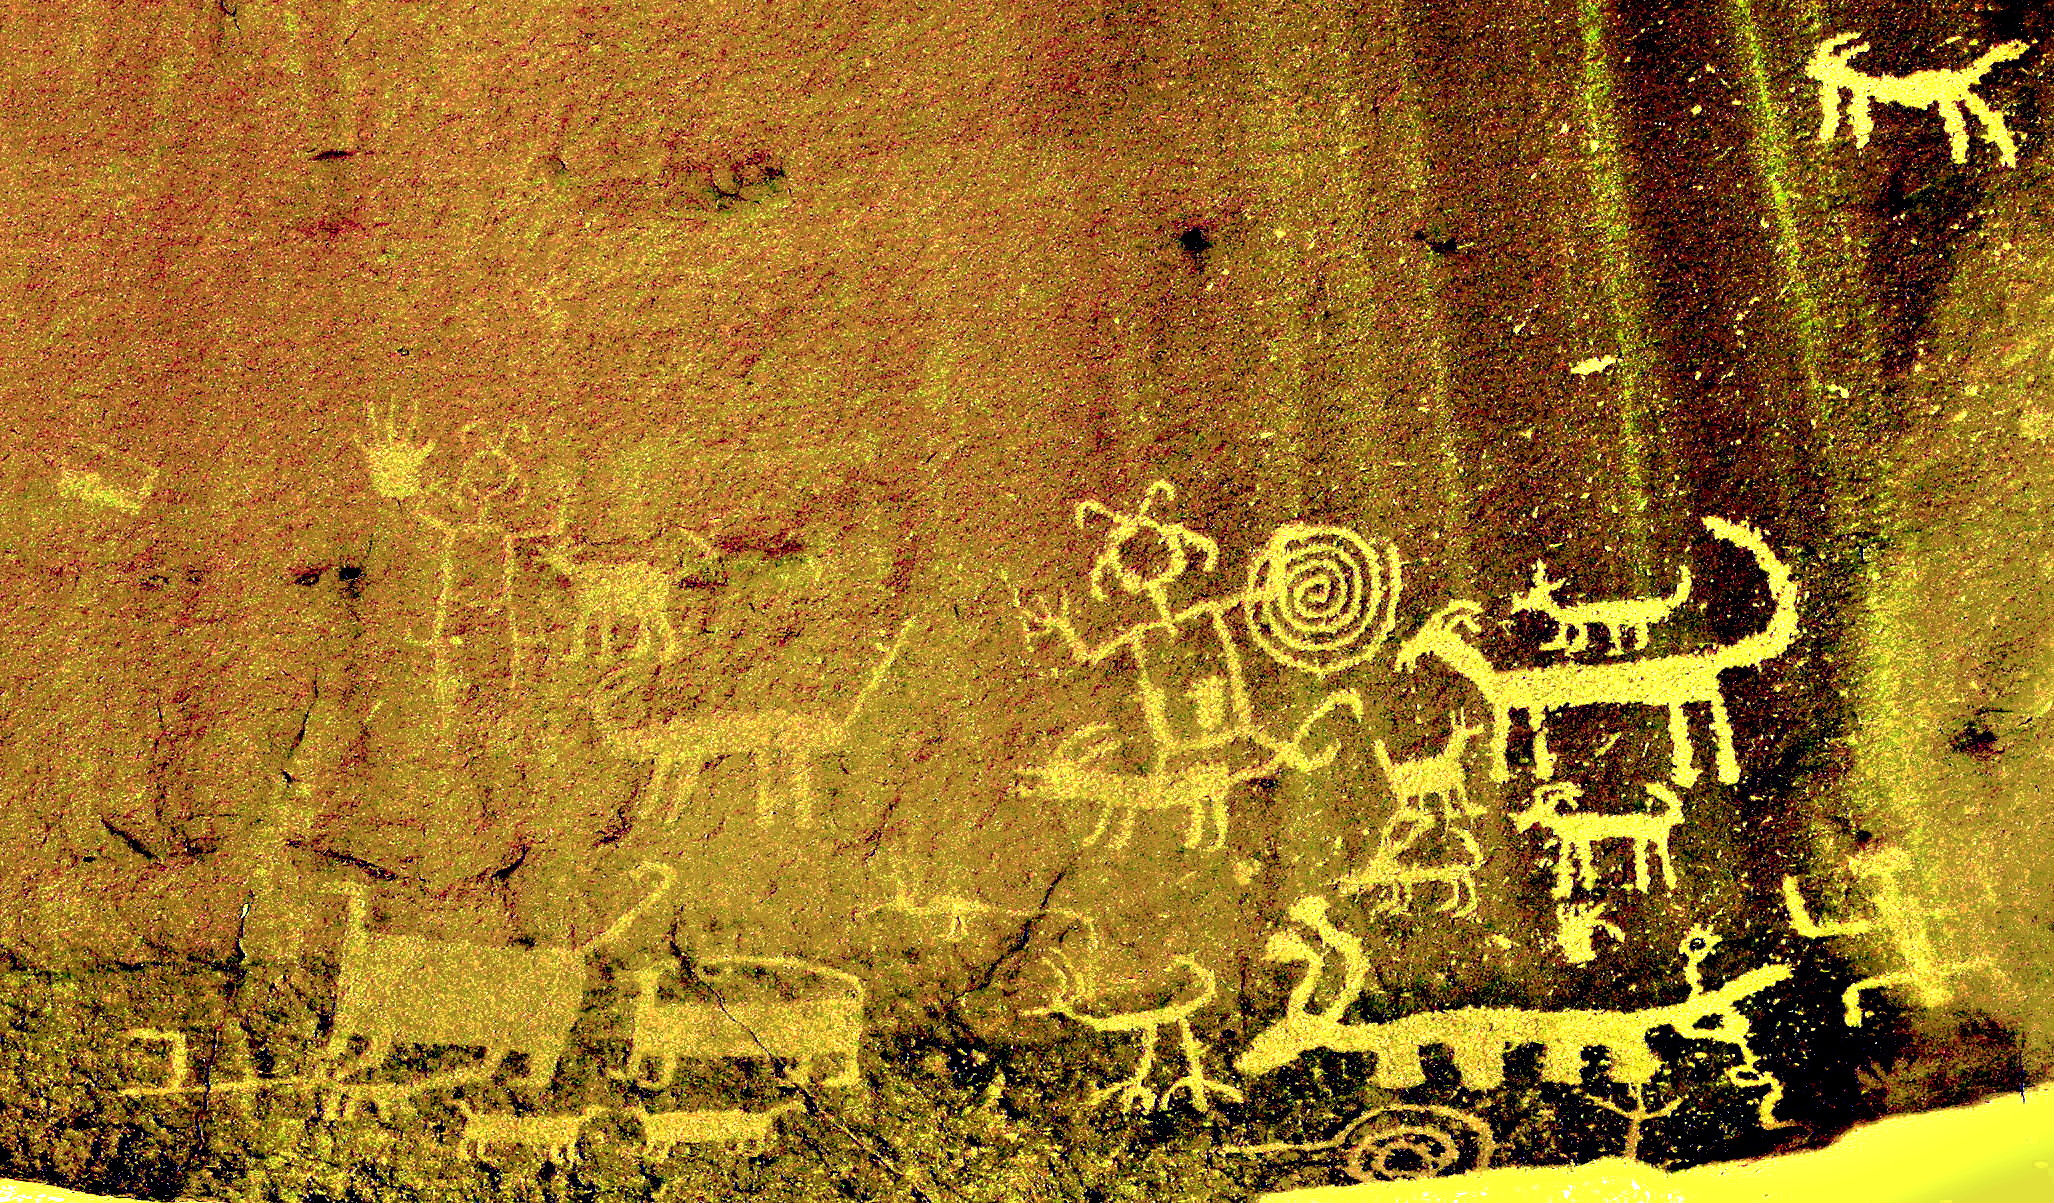 Una Vida Chaco Canyon rock art enhanced 2